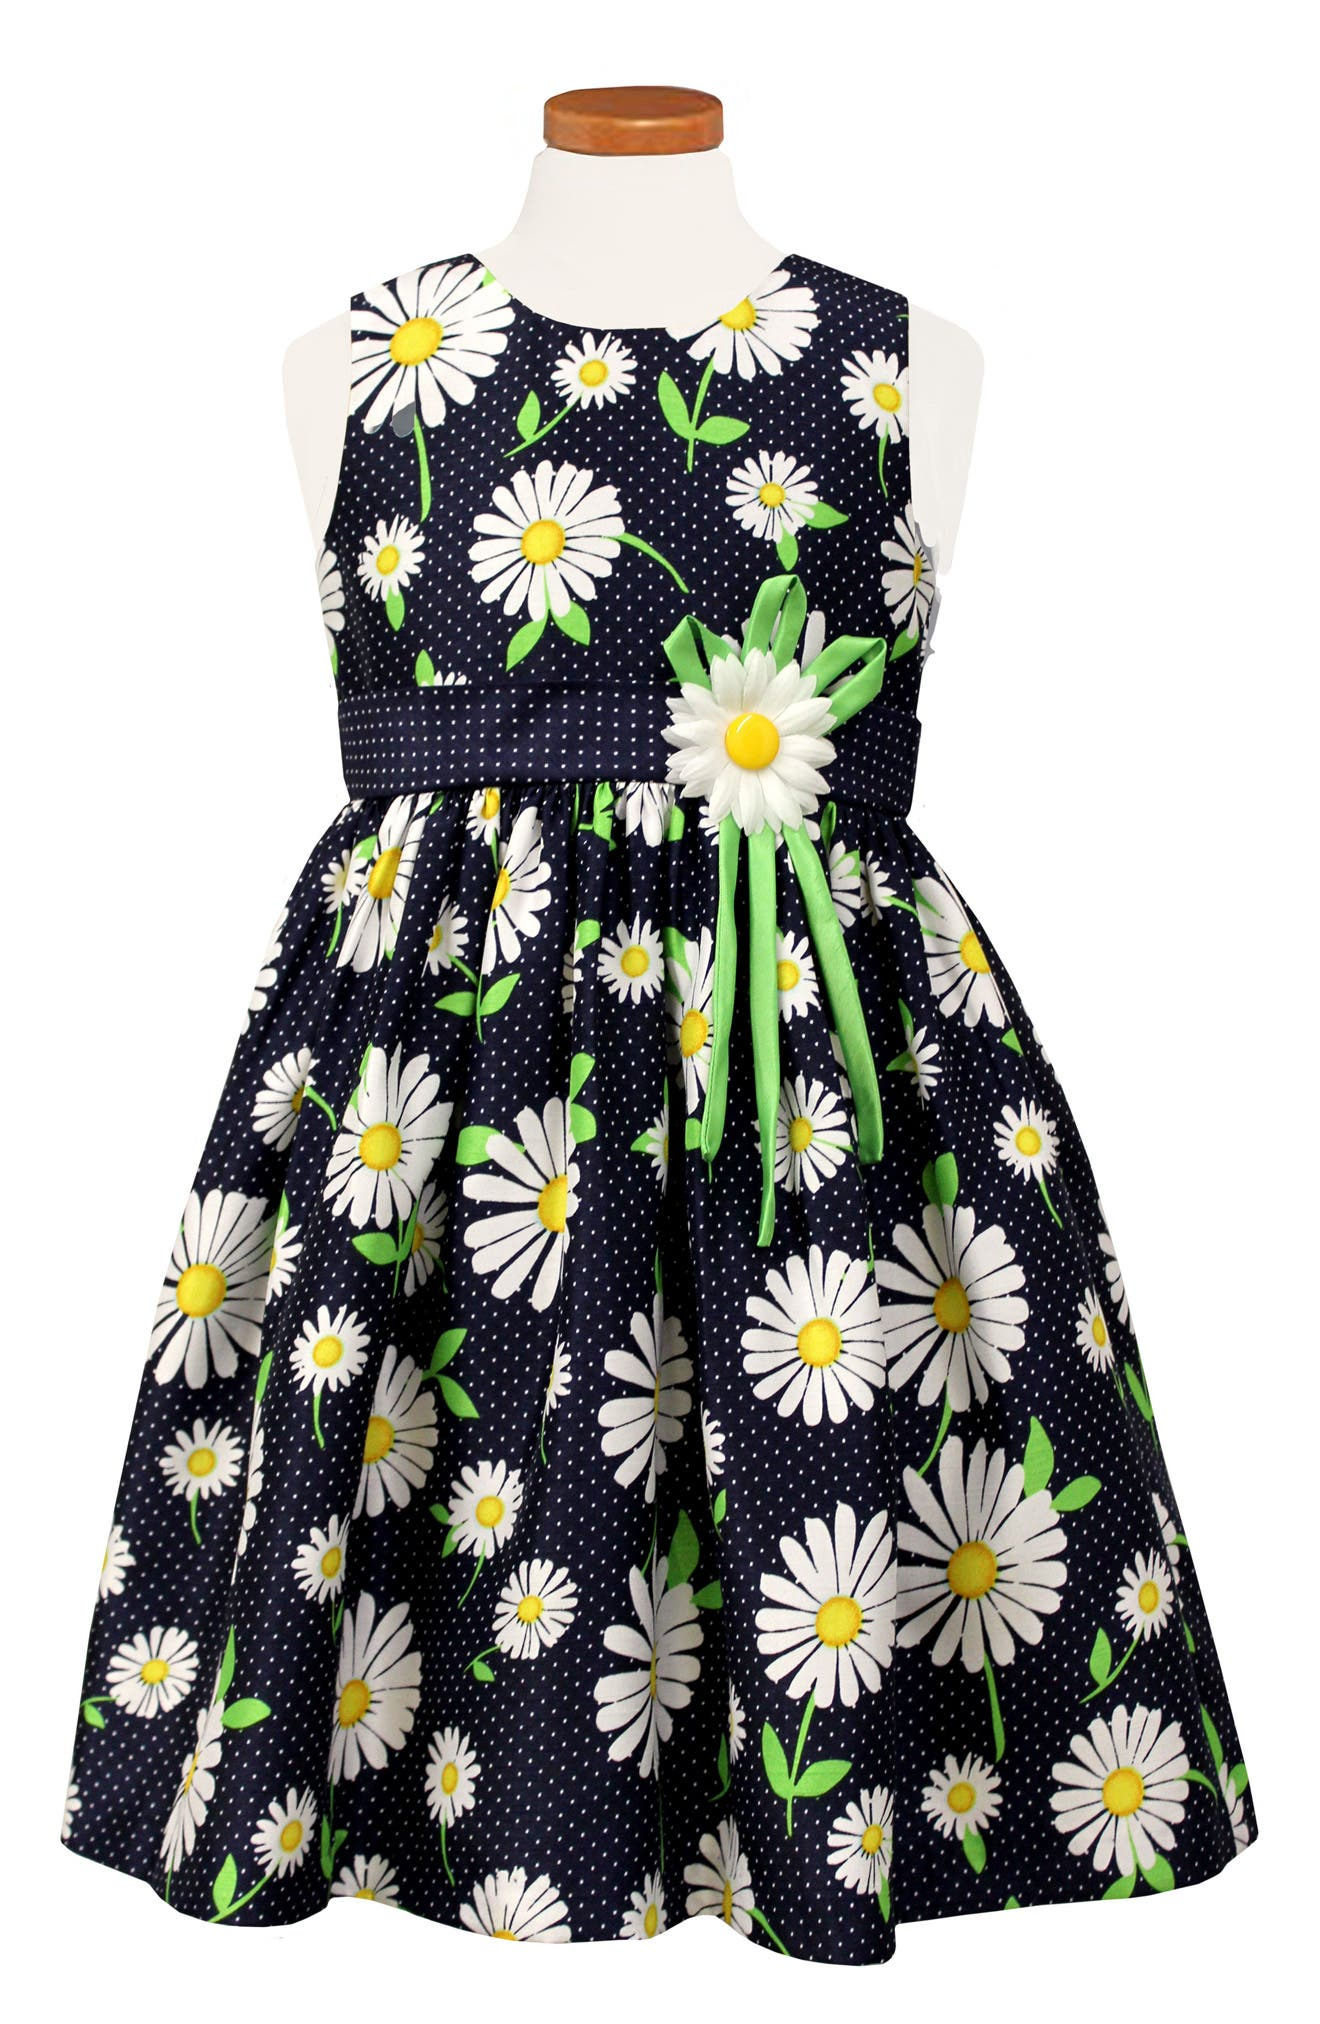 Sorbet Floral Print Sleeveless Dress (Toddler Girls & Little Girls)